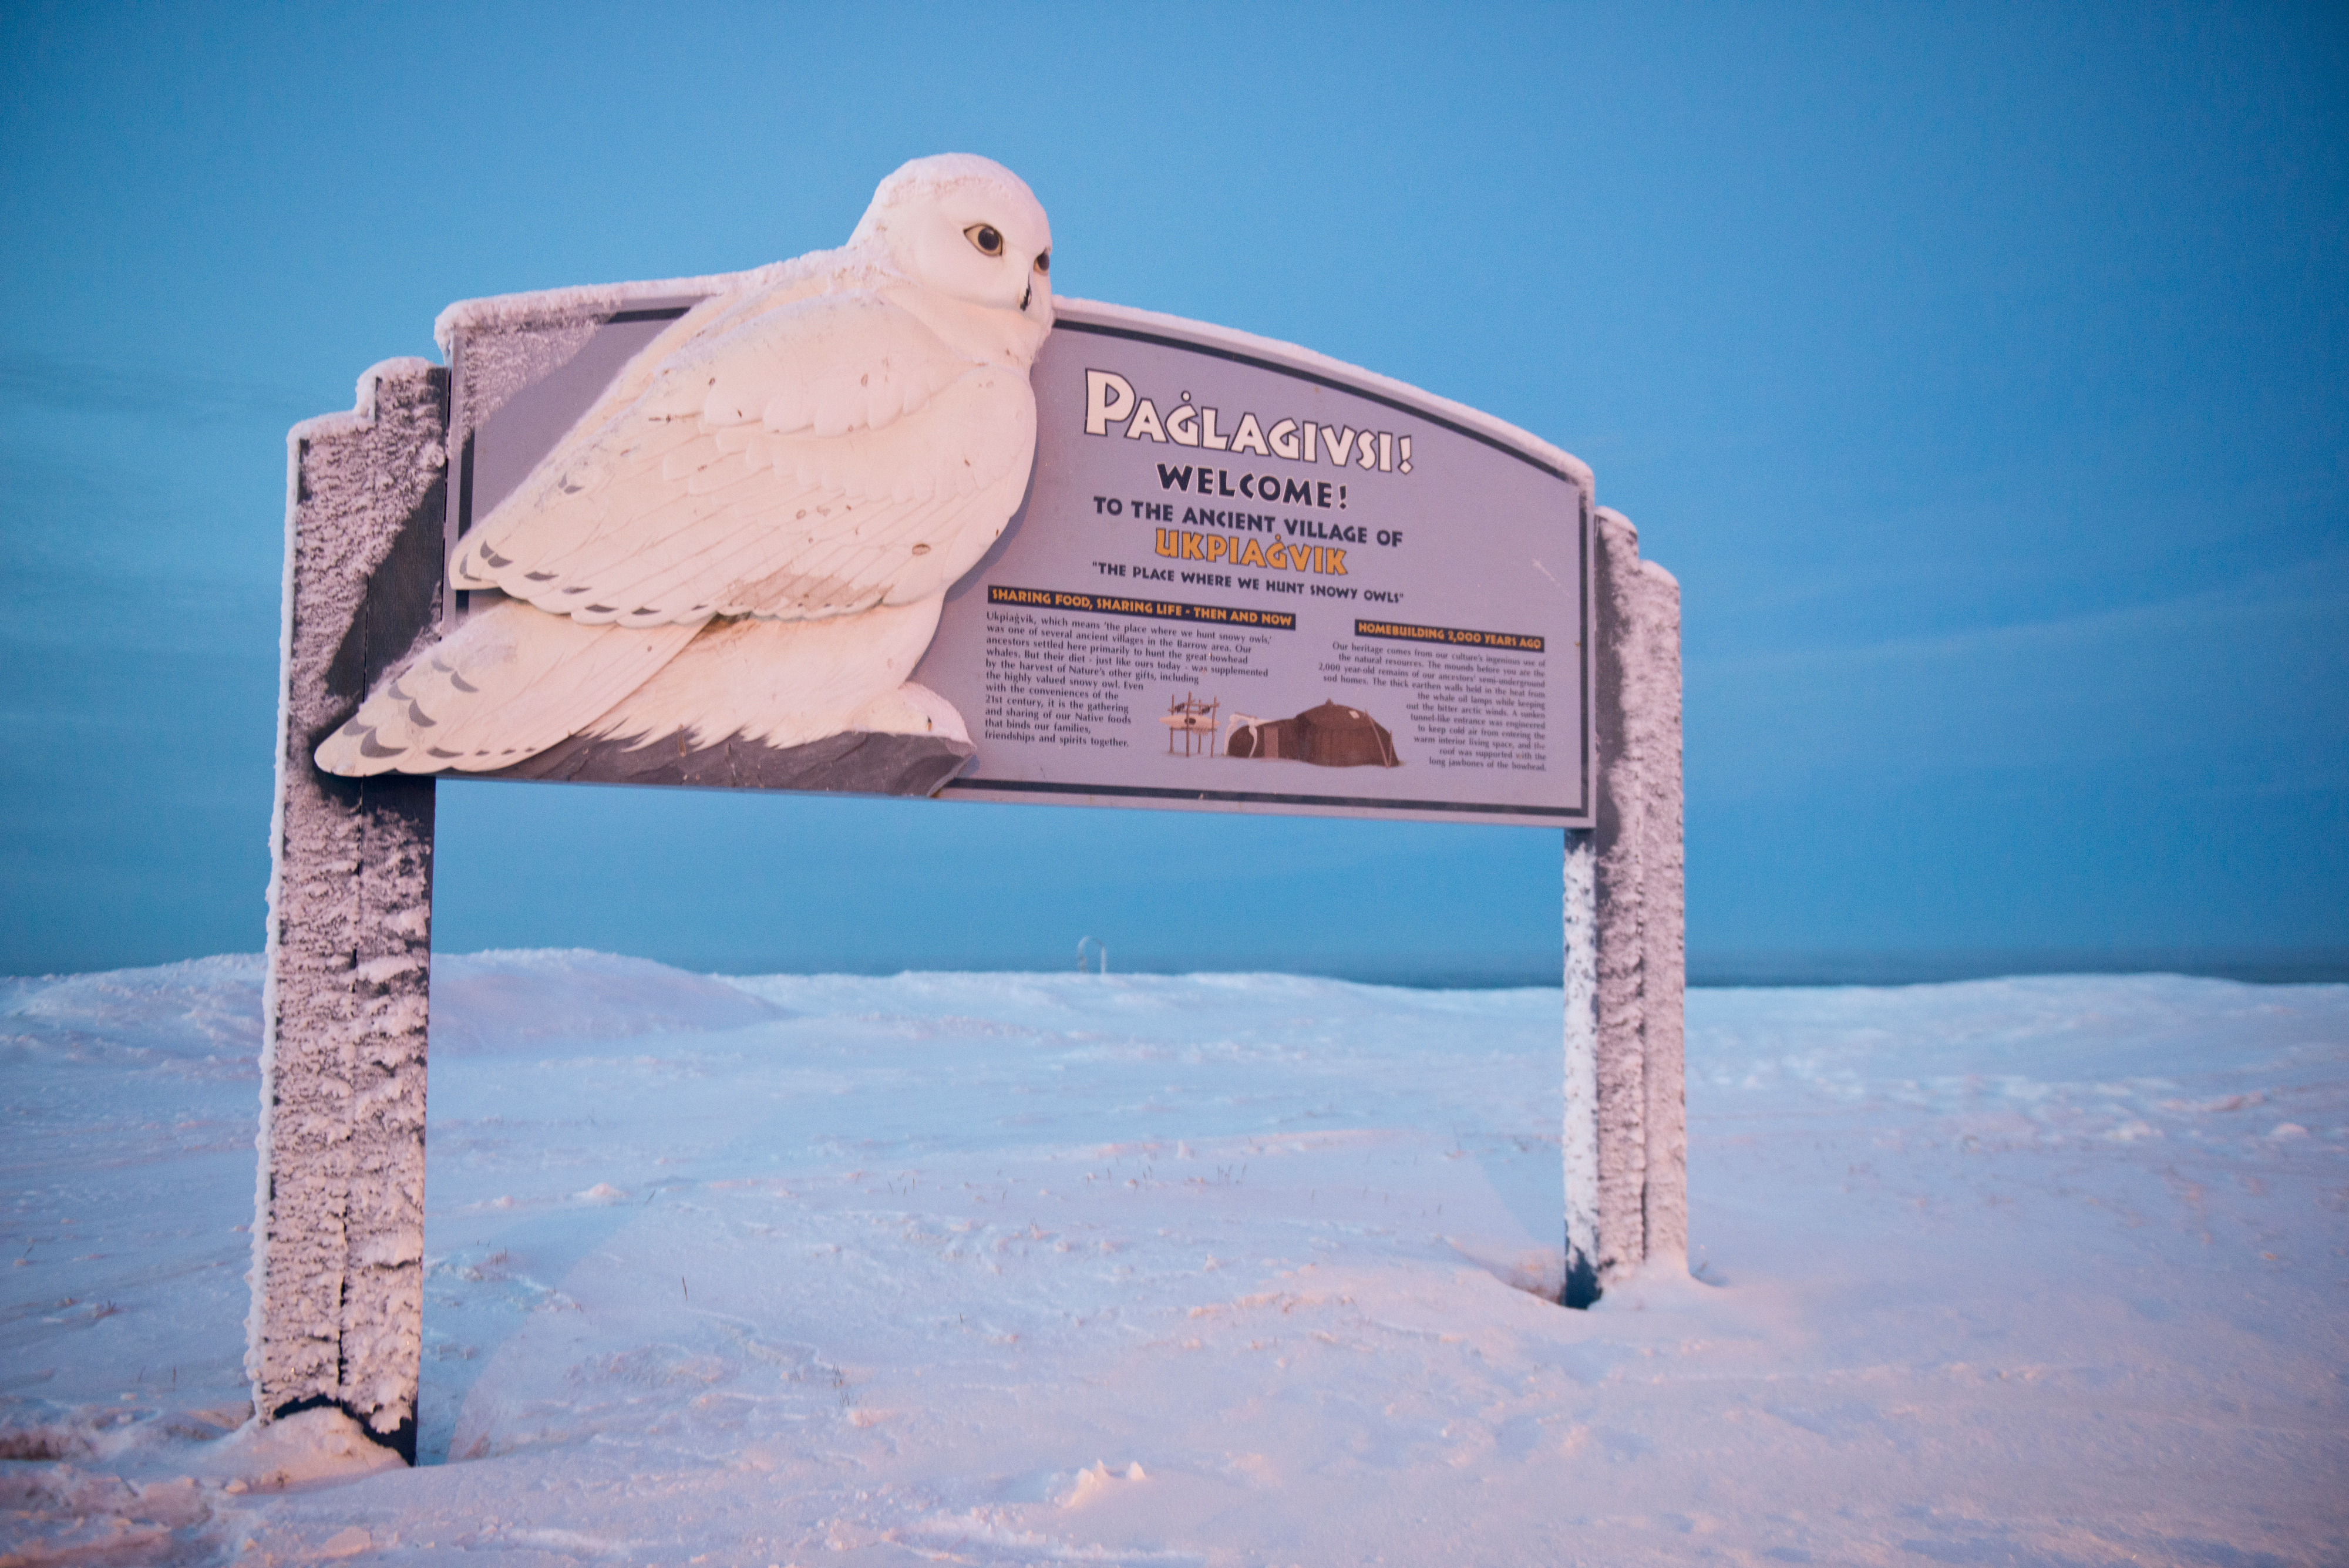 """A sign on the city's west side labels the place name Ukpiaġvik, and says the word means """"the place where we hunt snowy owls."""" Some residents say that term, not Utqiagvik, is the proper Inupiaq place name. Voters approved changing the name of the city of Barrow to Utqiagvik in October, a change which went into effect on December 1. In Alaska's northernmost city, however, residents remain divided about whether they name should've changed at all, whether the process was hurried, and whether the Utqiagvik is even the proper Inupiaq place name. Photographed on Wednesday, December 14, 2016. (Marc Lester / Alaska Dispatch News)"""